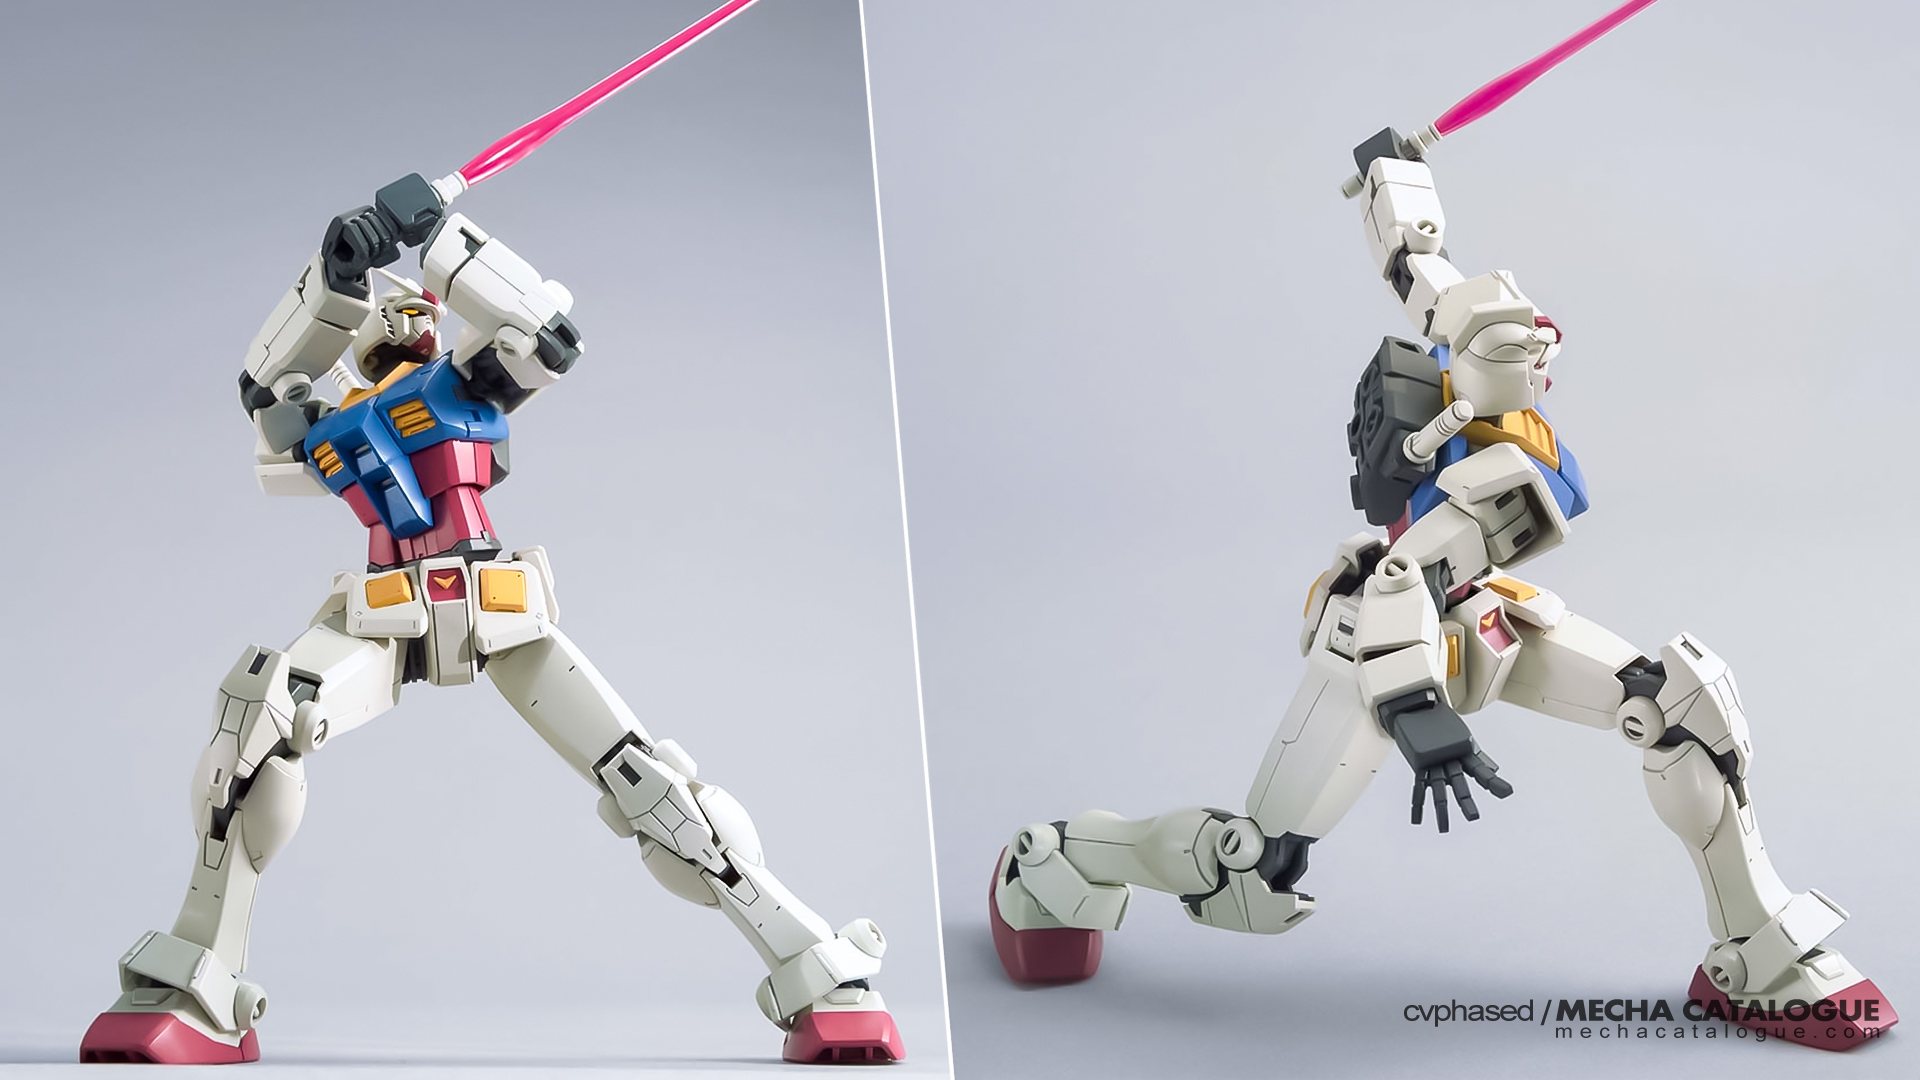 HG RX-78-2 Gundam [Beyond Global]: Full Reveal and Details